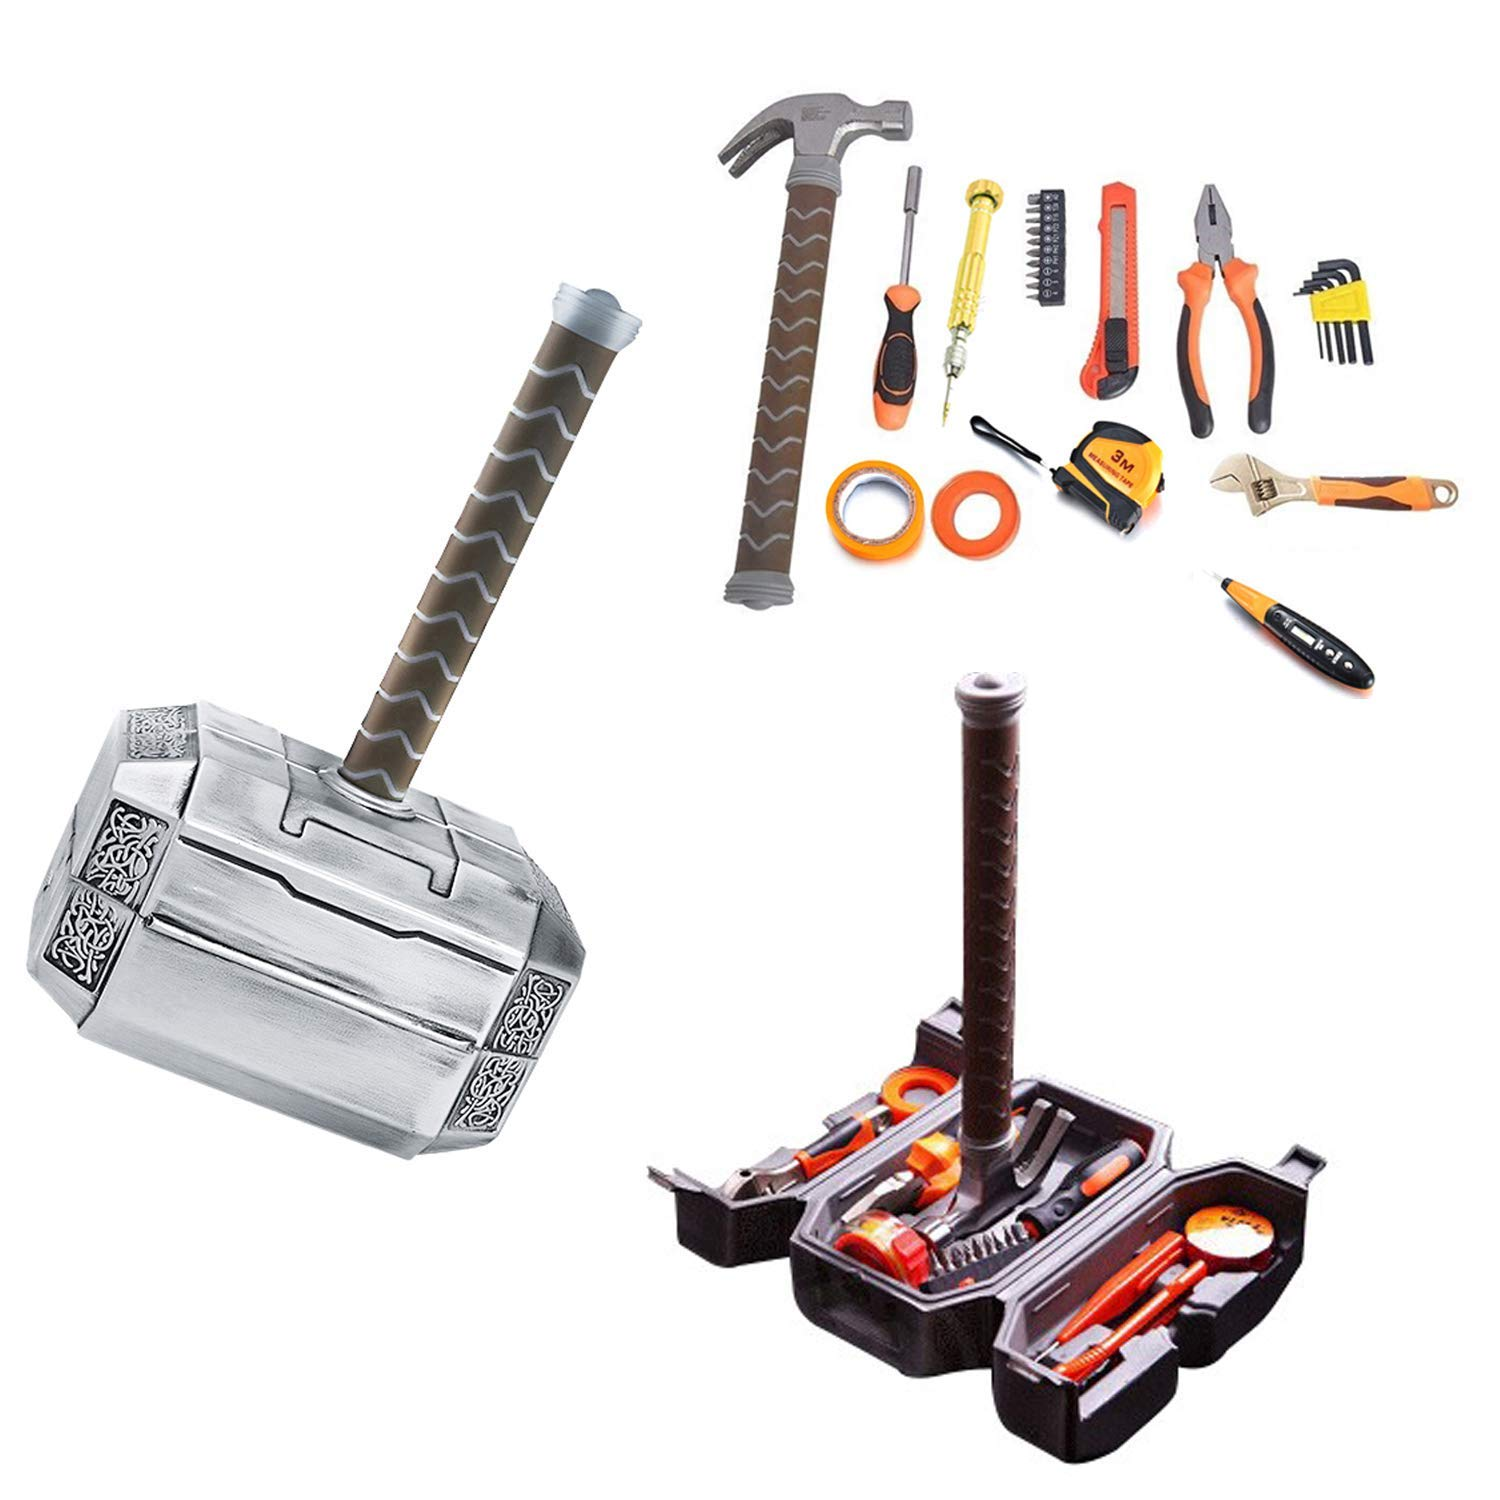 Thor Hammer Tool Set,Thor Battle Hammer tool set,Durable, Long Lasting Chrome Finish Tools with Thor Hammer case by Langjitianya